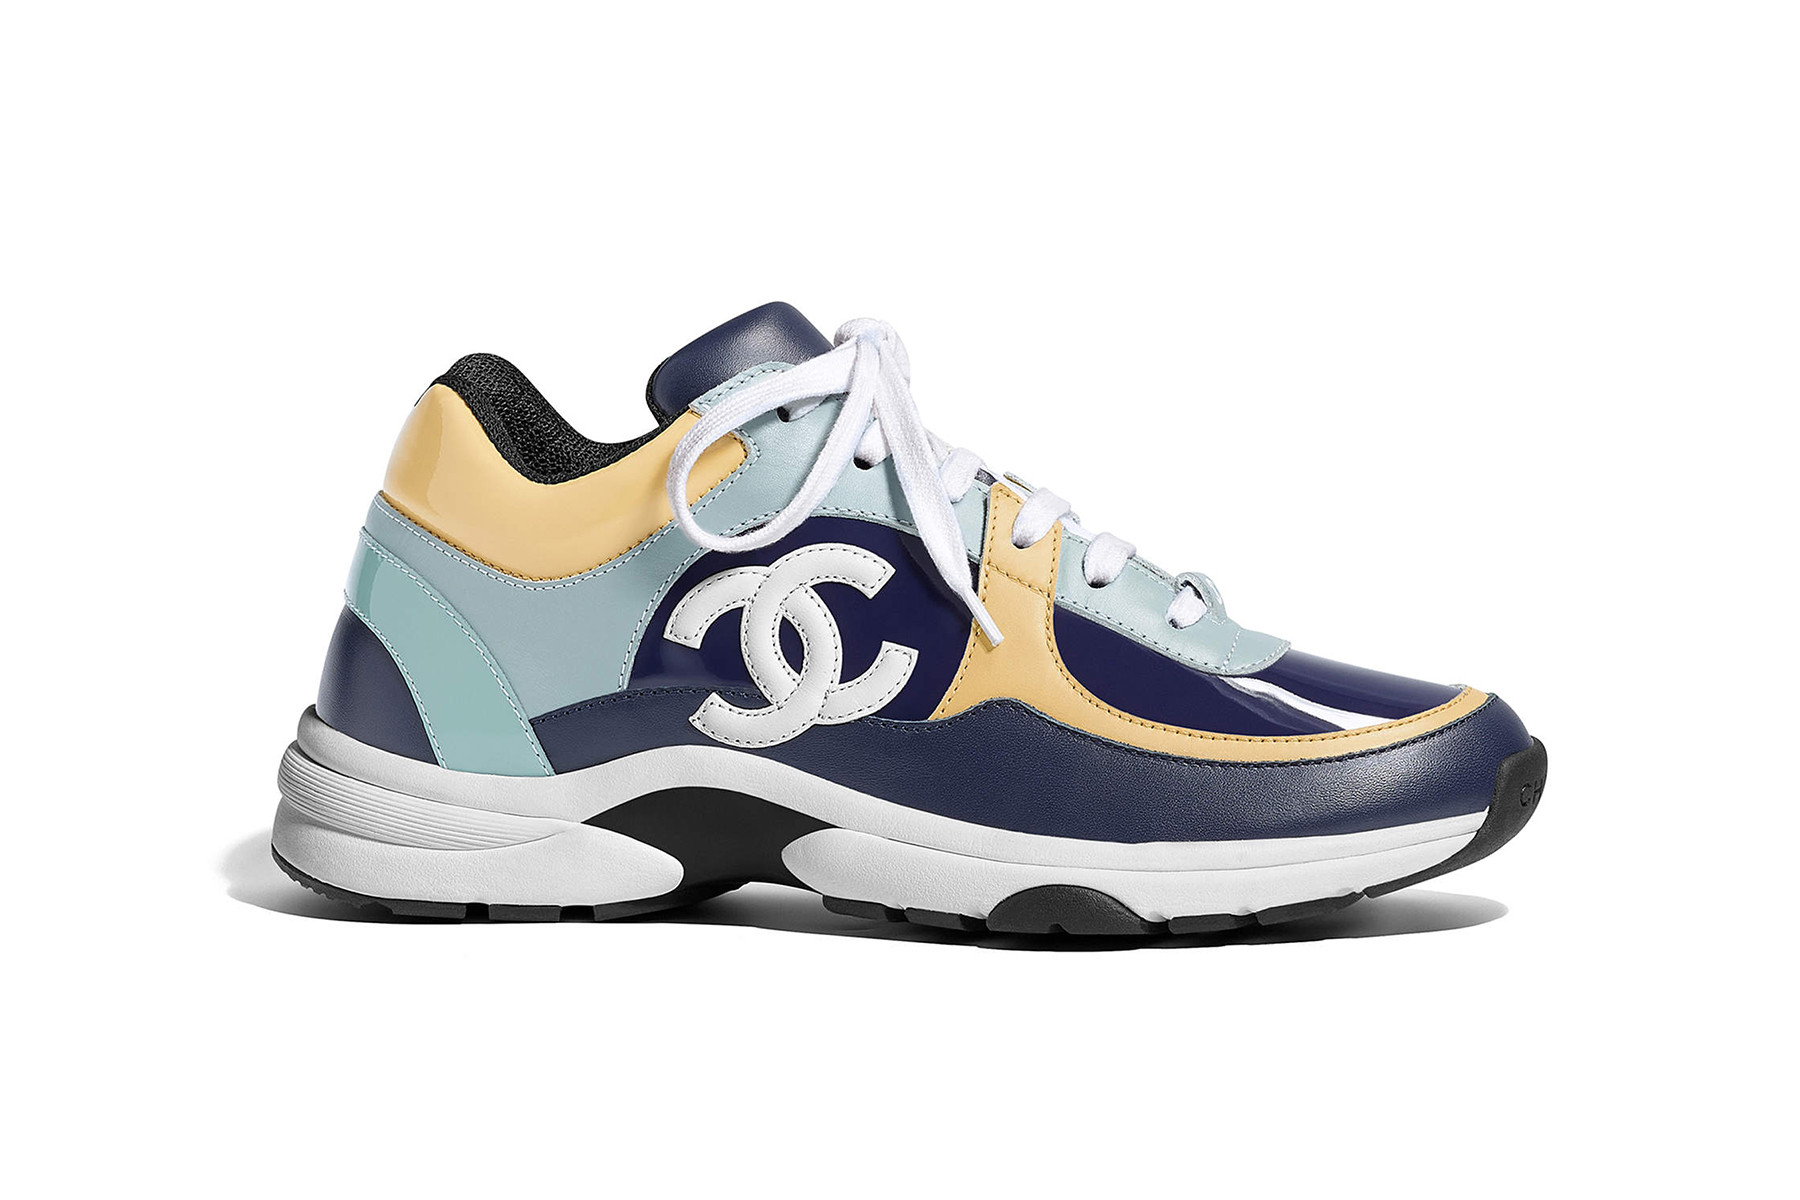 Chanel Spring/Summer 2018 Sneaker Collection | HYPEBAE